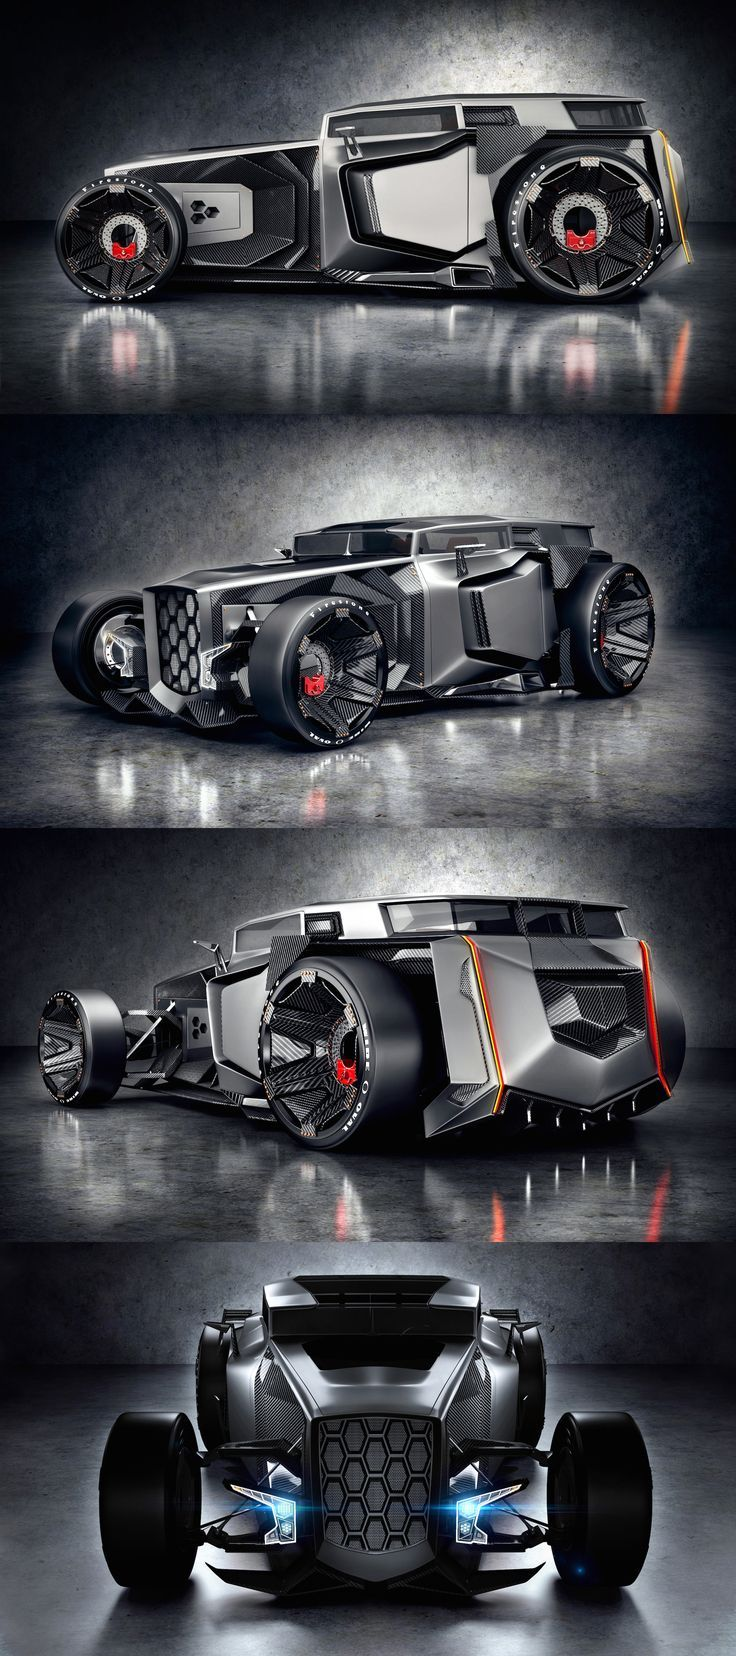 I kind of want a Mad Max-ish hot rod/muscle car for the project so I think this would work!